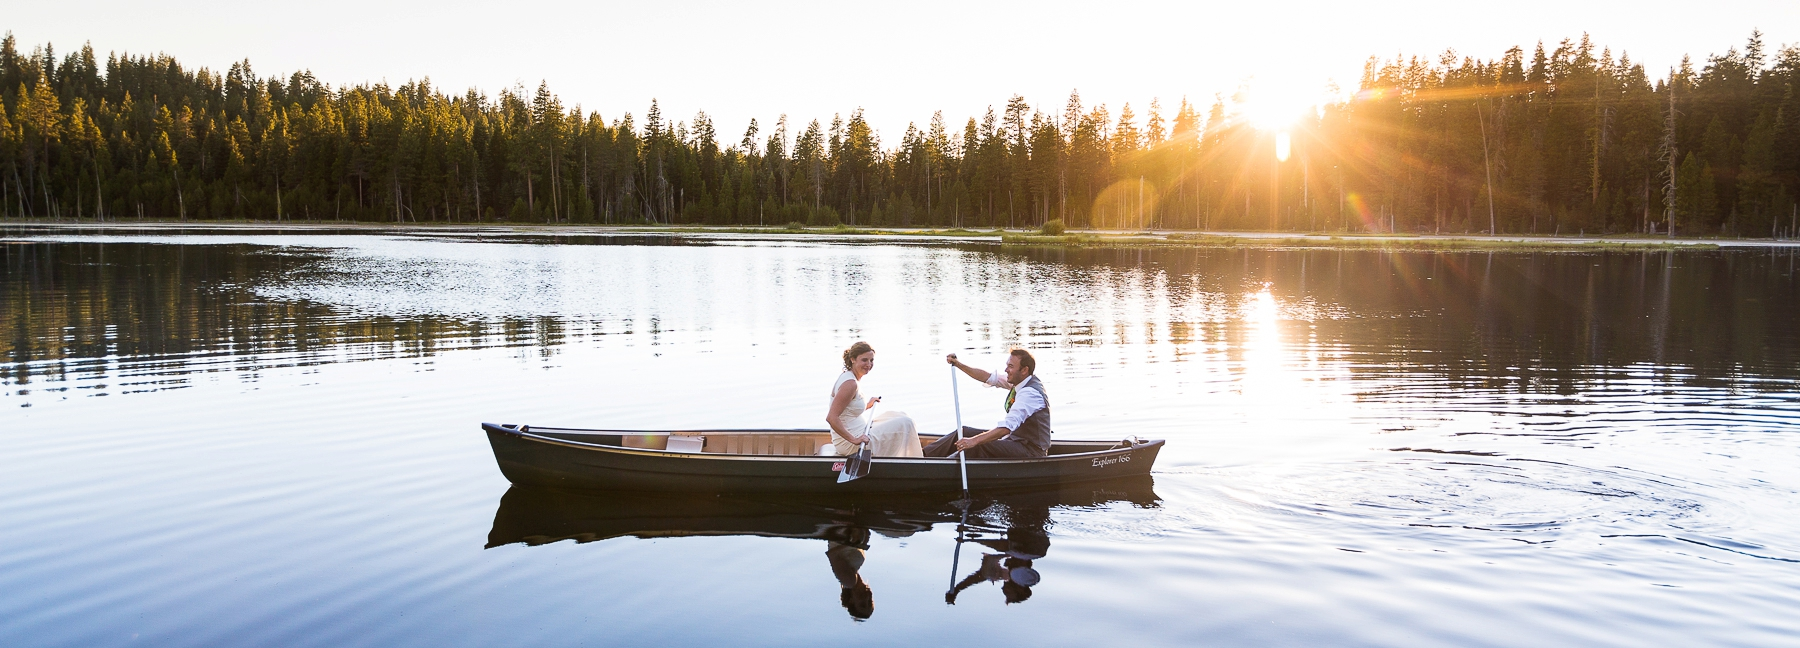 3 Tricks for Planning a Remote Wedding in a Wilderness Location